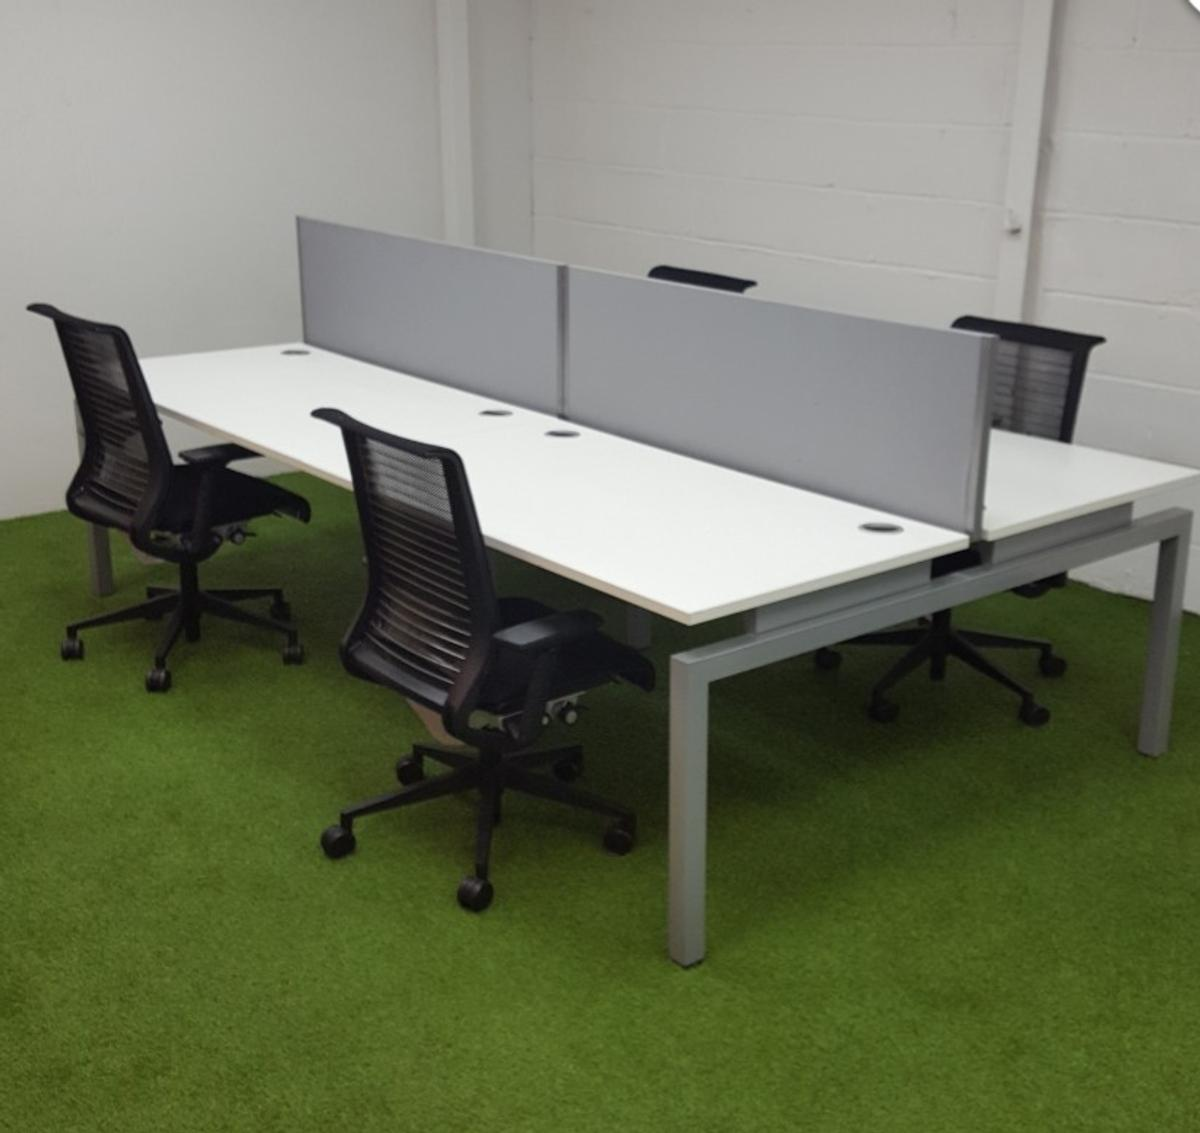 Terrific City New Used Office Furniture Bargain City In Cm20 Harlow Download Free Architecture Designs Scobabritishbridgeorg